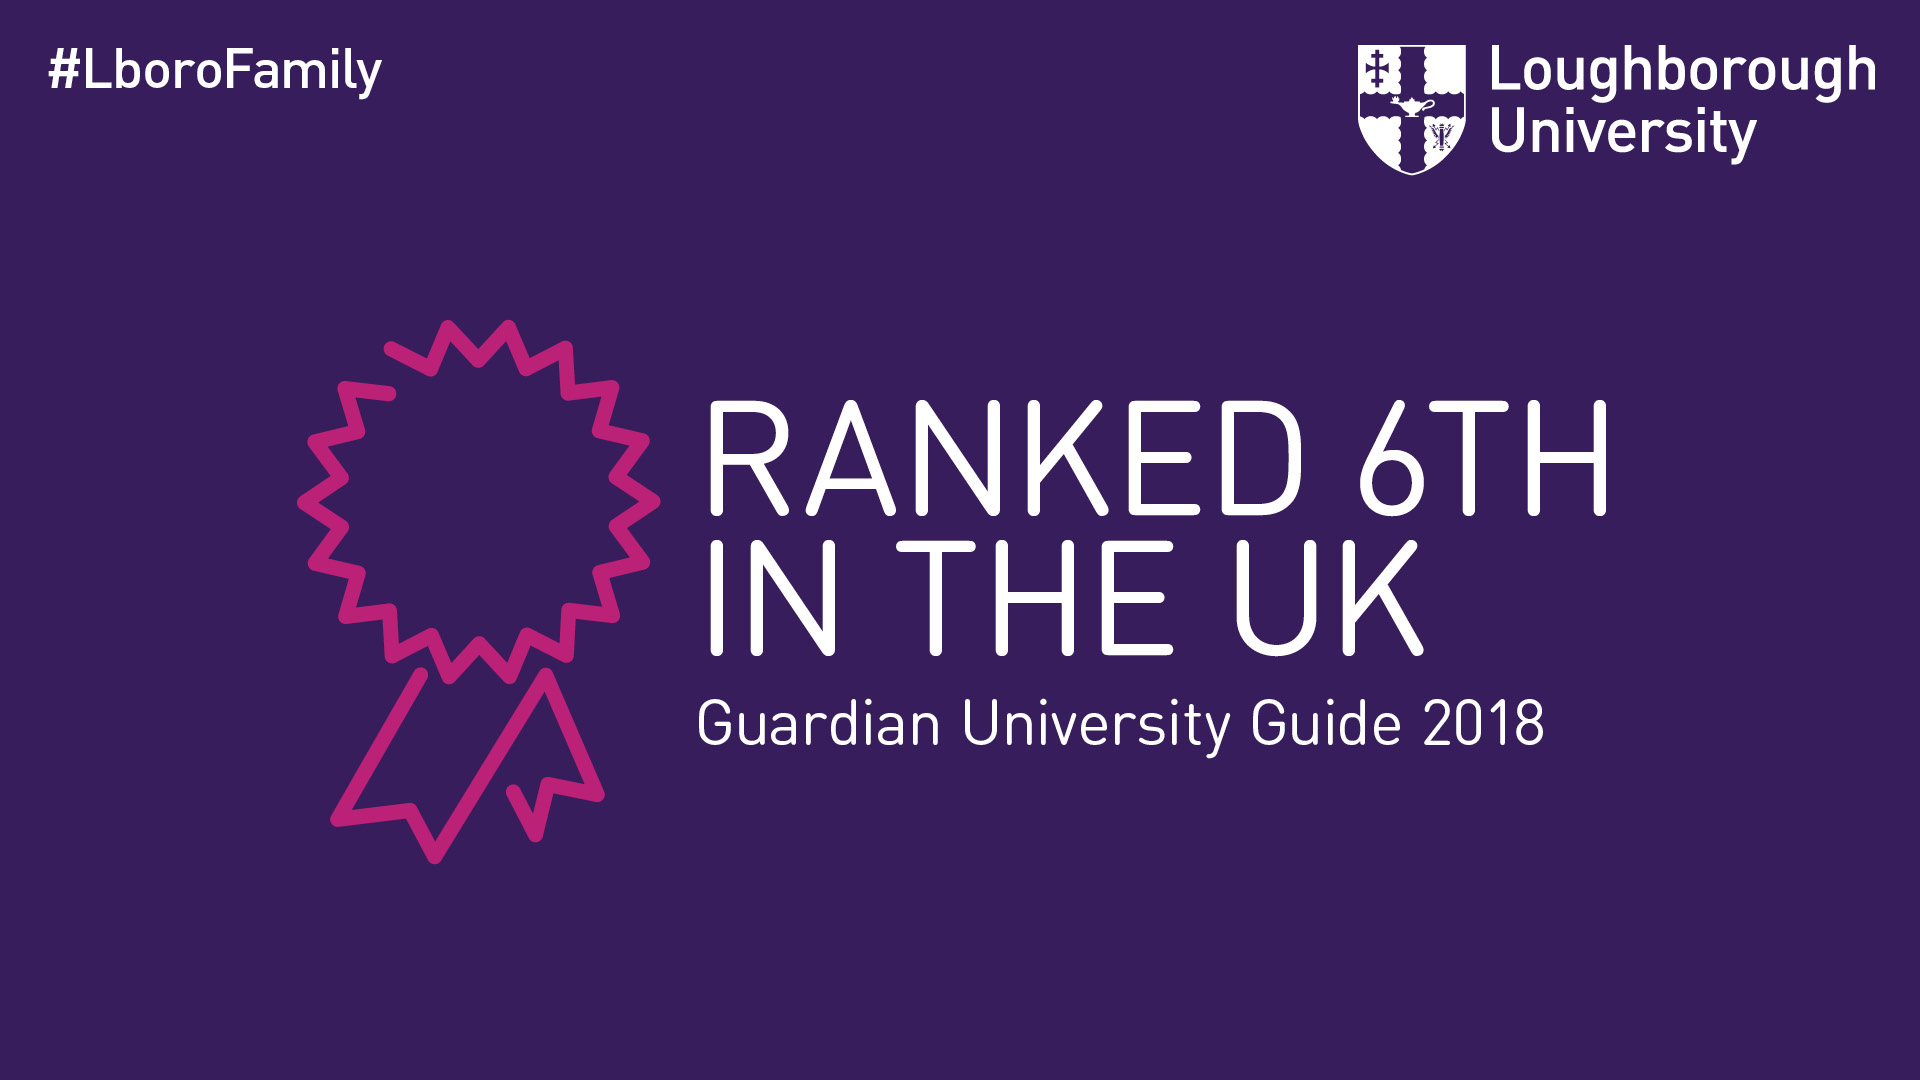 Loughborough ranked 6th in the UK!